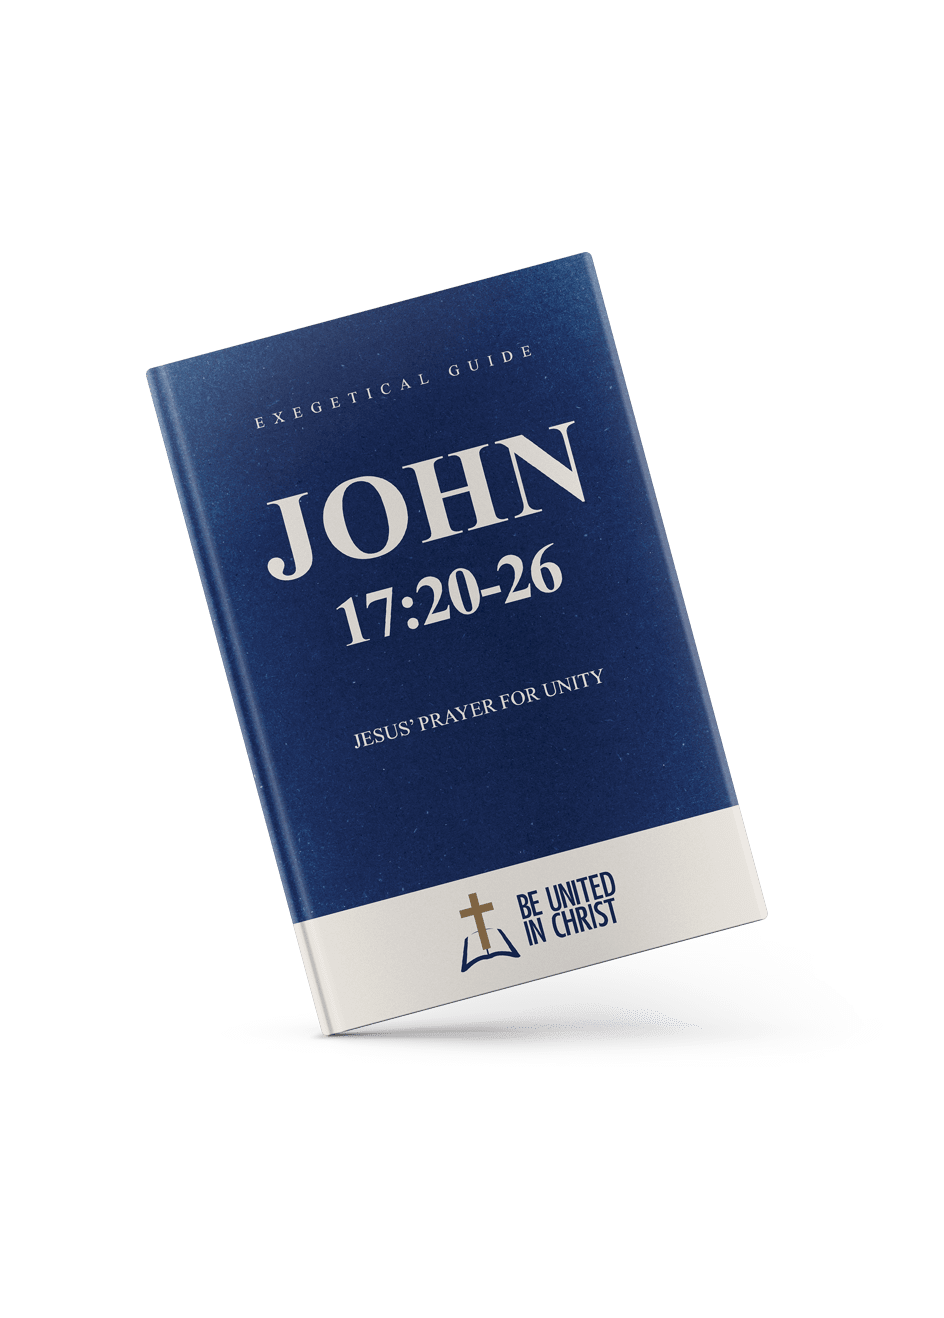 John 17:20-26 Book Cover angle view